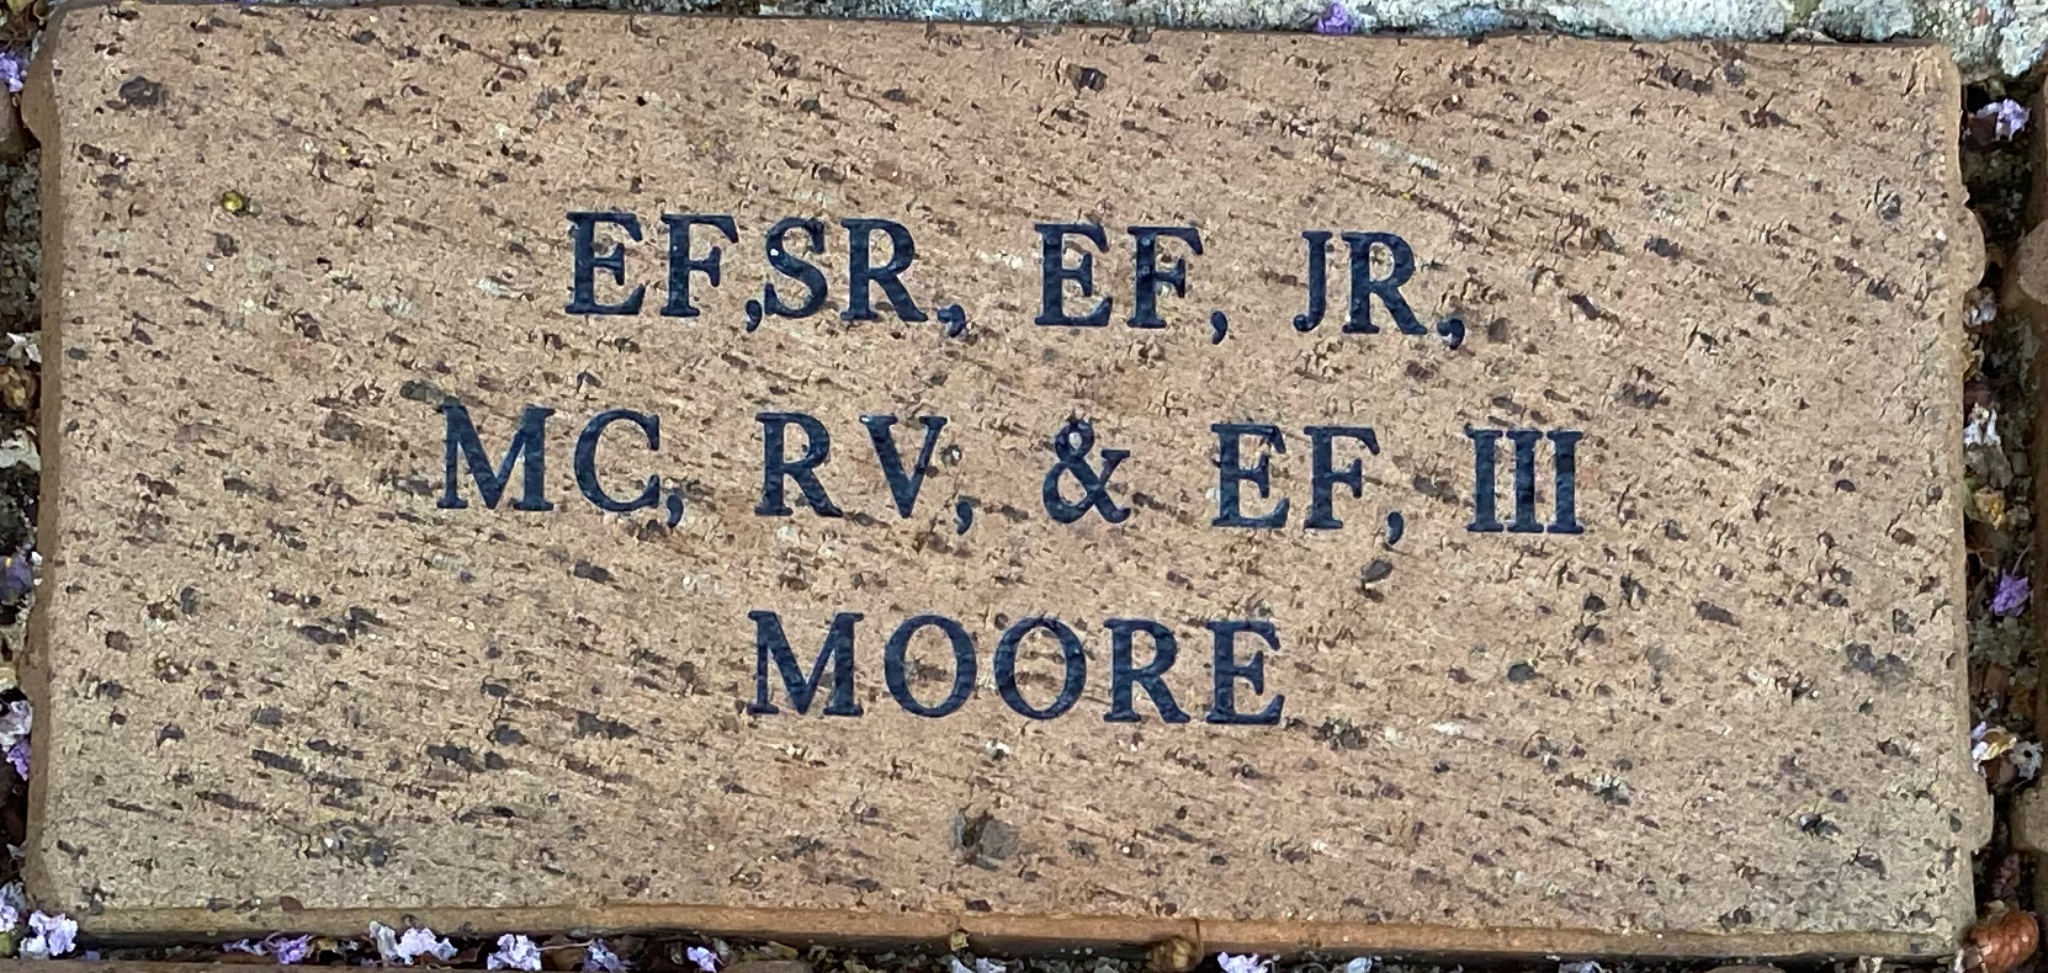 EF, SR.  EF, JR. MC, RV & EF,  III MOORE